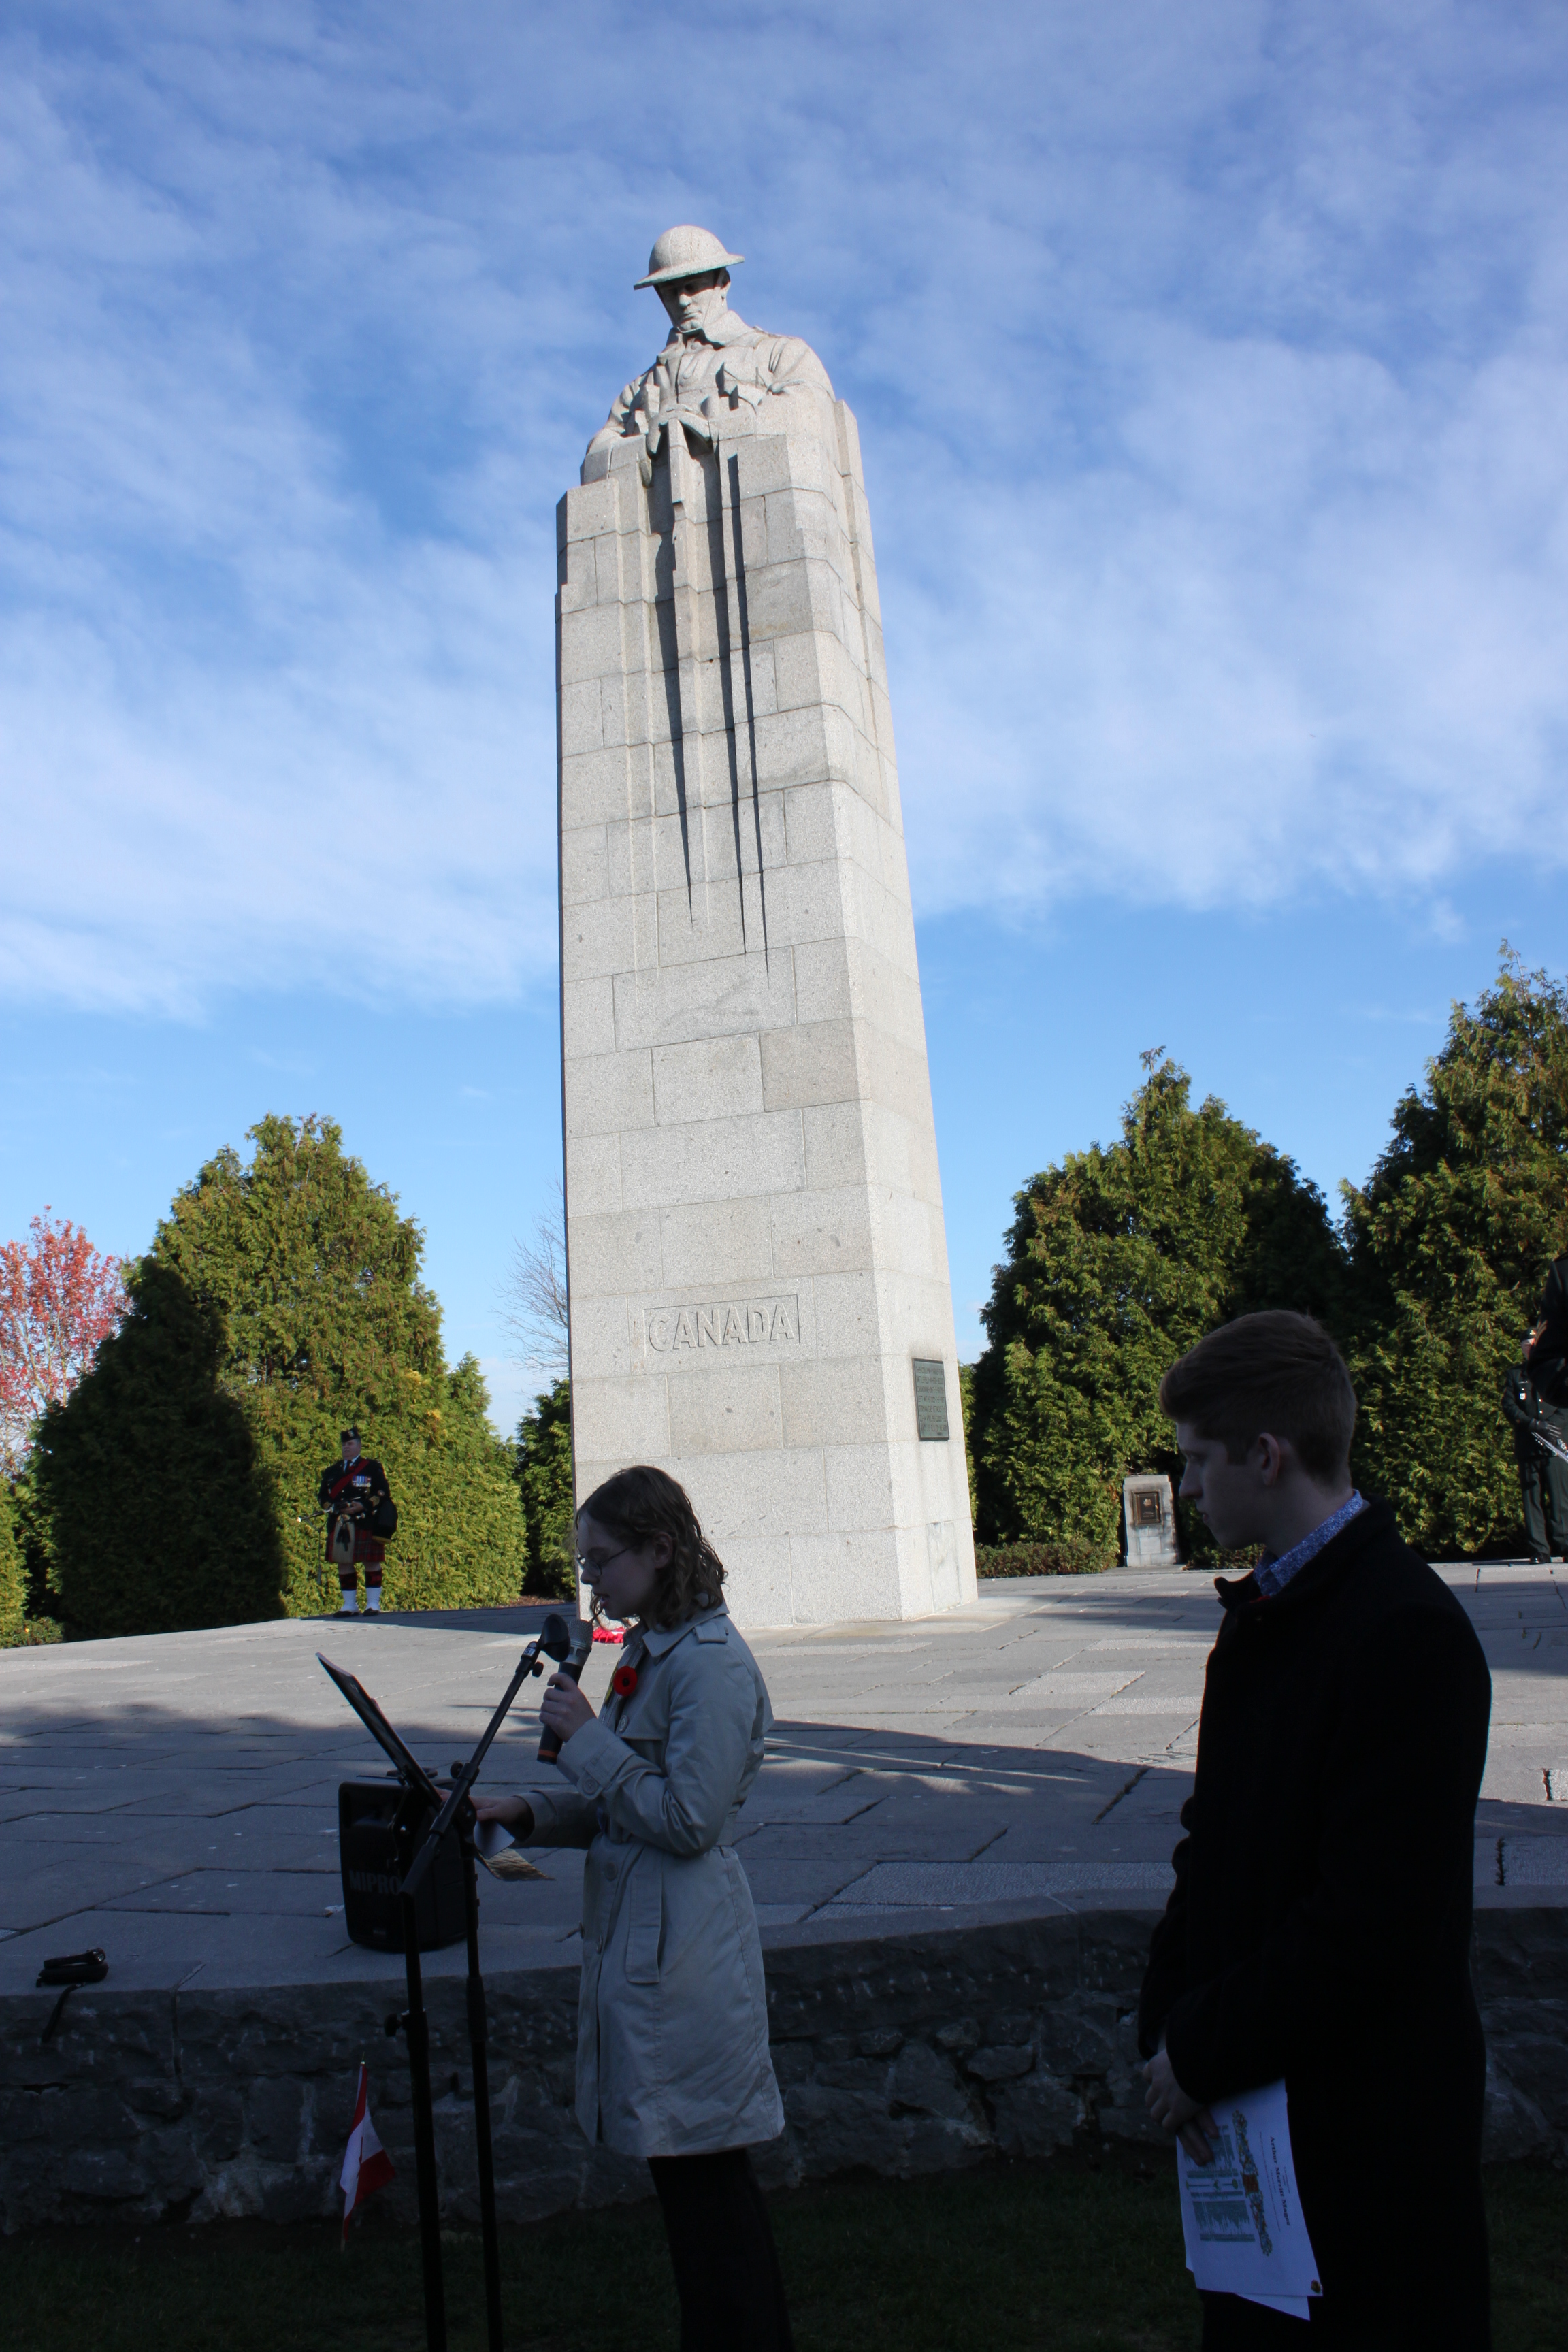 Photo – Youth delegate presenting the research project at St. Julien Canadian Memorial on November 9, 2018.